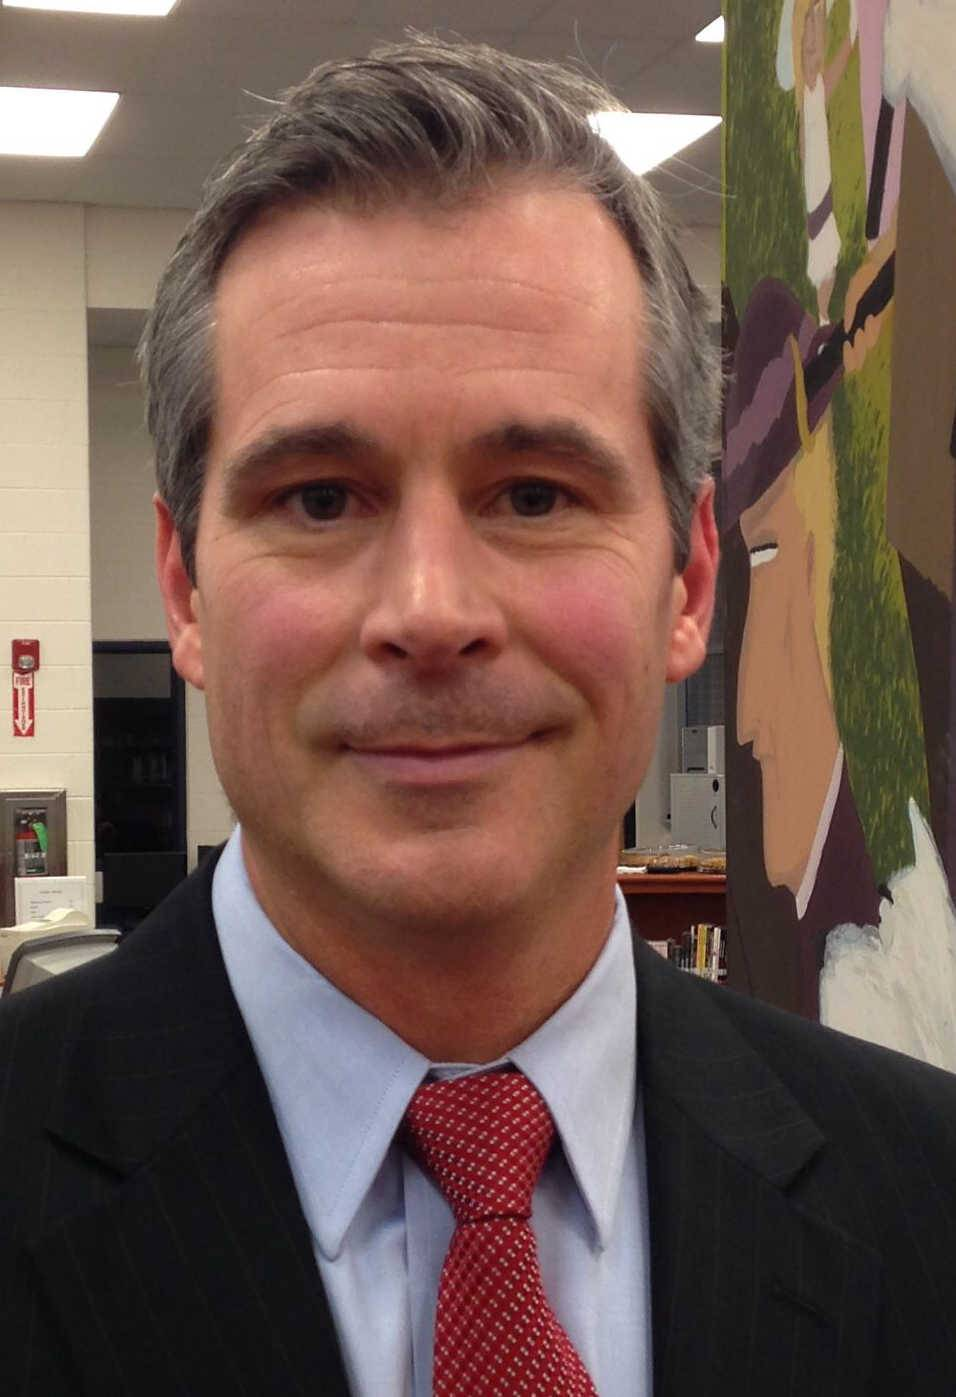 The Kaneland school board will vote Monday on a pay raise for Superintendent Todd Leden.